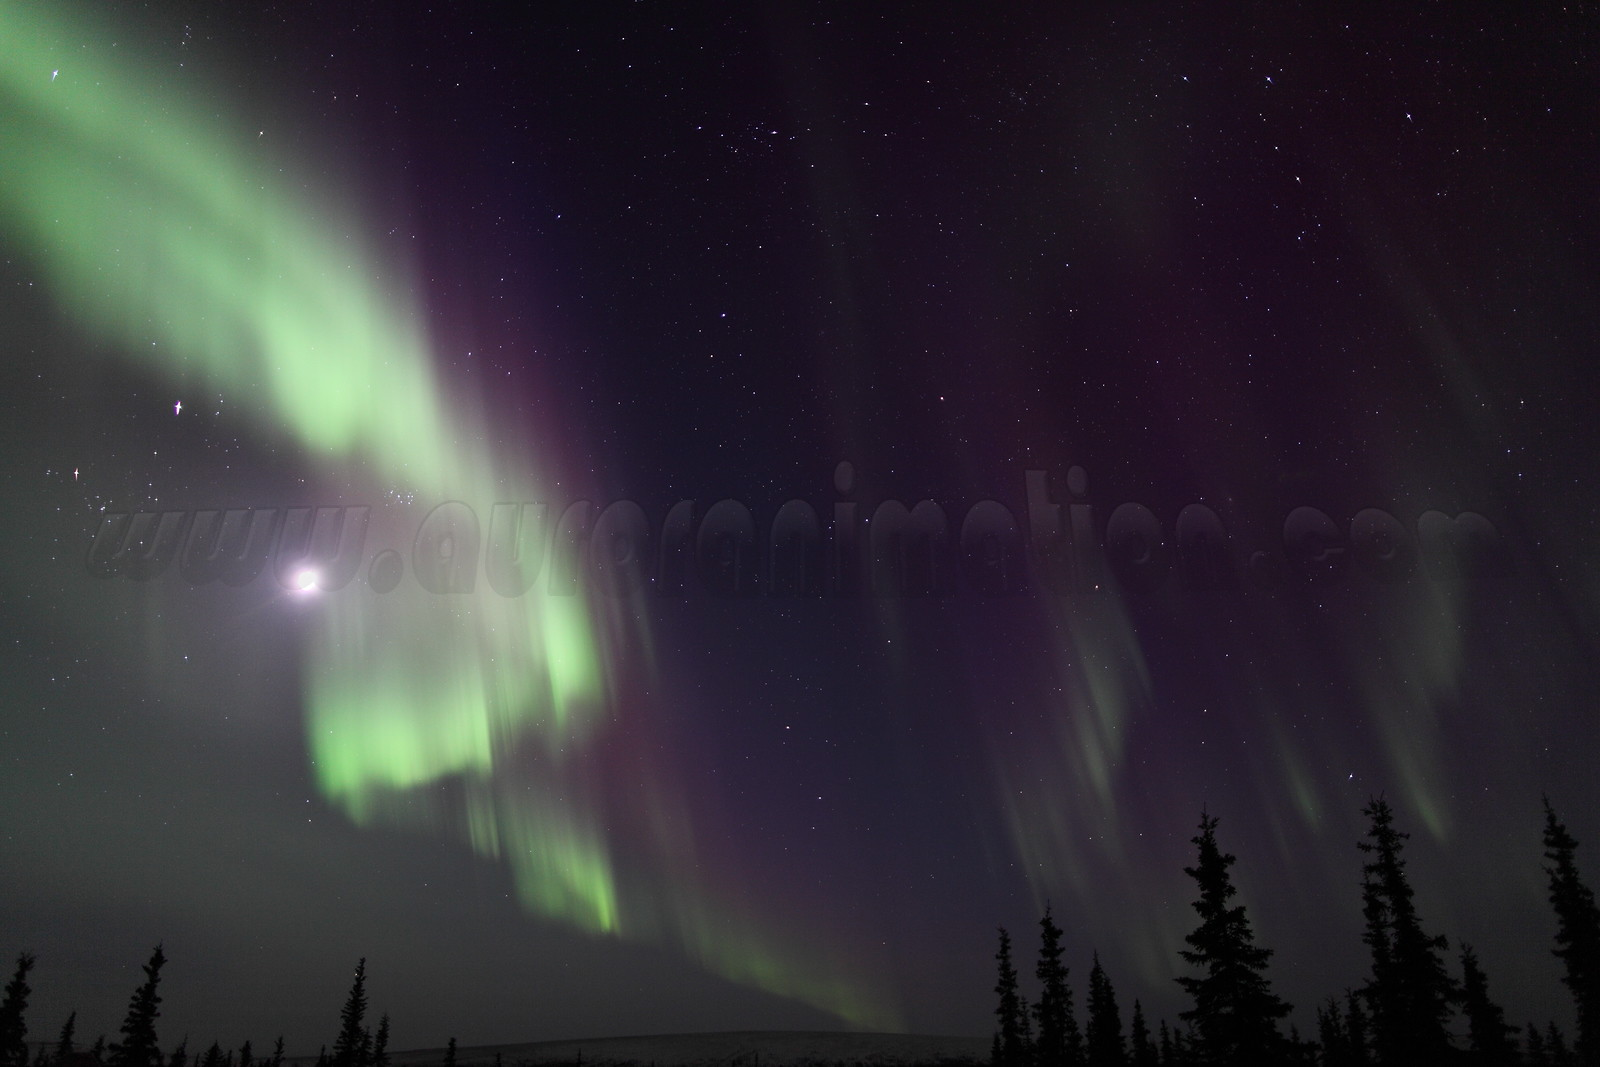 Northern Lights with Moon, Jupiter, Pleiades and constellations Taurus, Perseus and Cassiopeia at 11:25 PM on March 16, 2013 - Arctic Circle, Alaska <br /> <br /> Canon 5D MKII with EF 24mm f/1.4L II